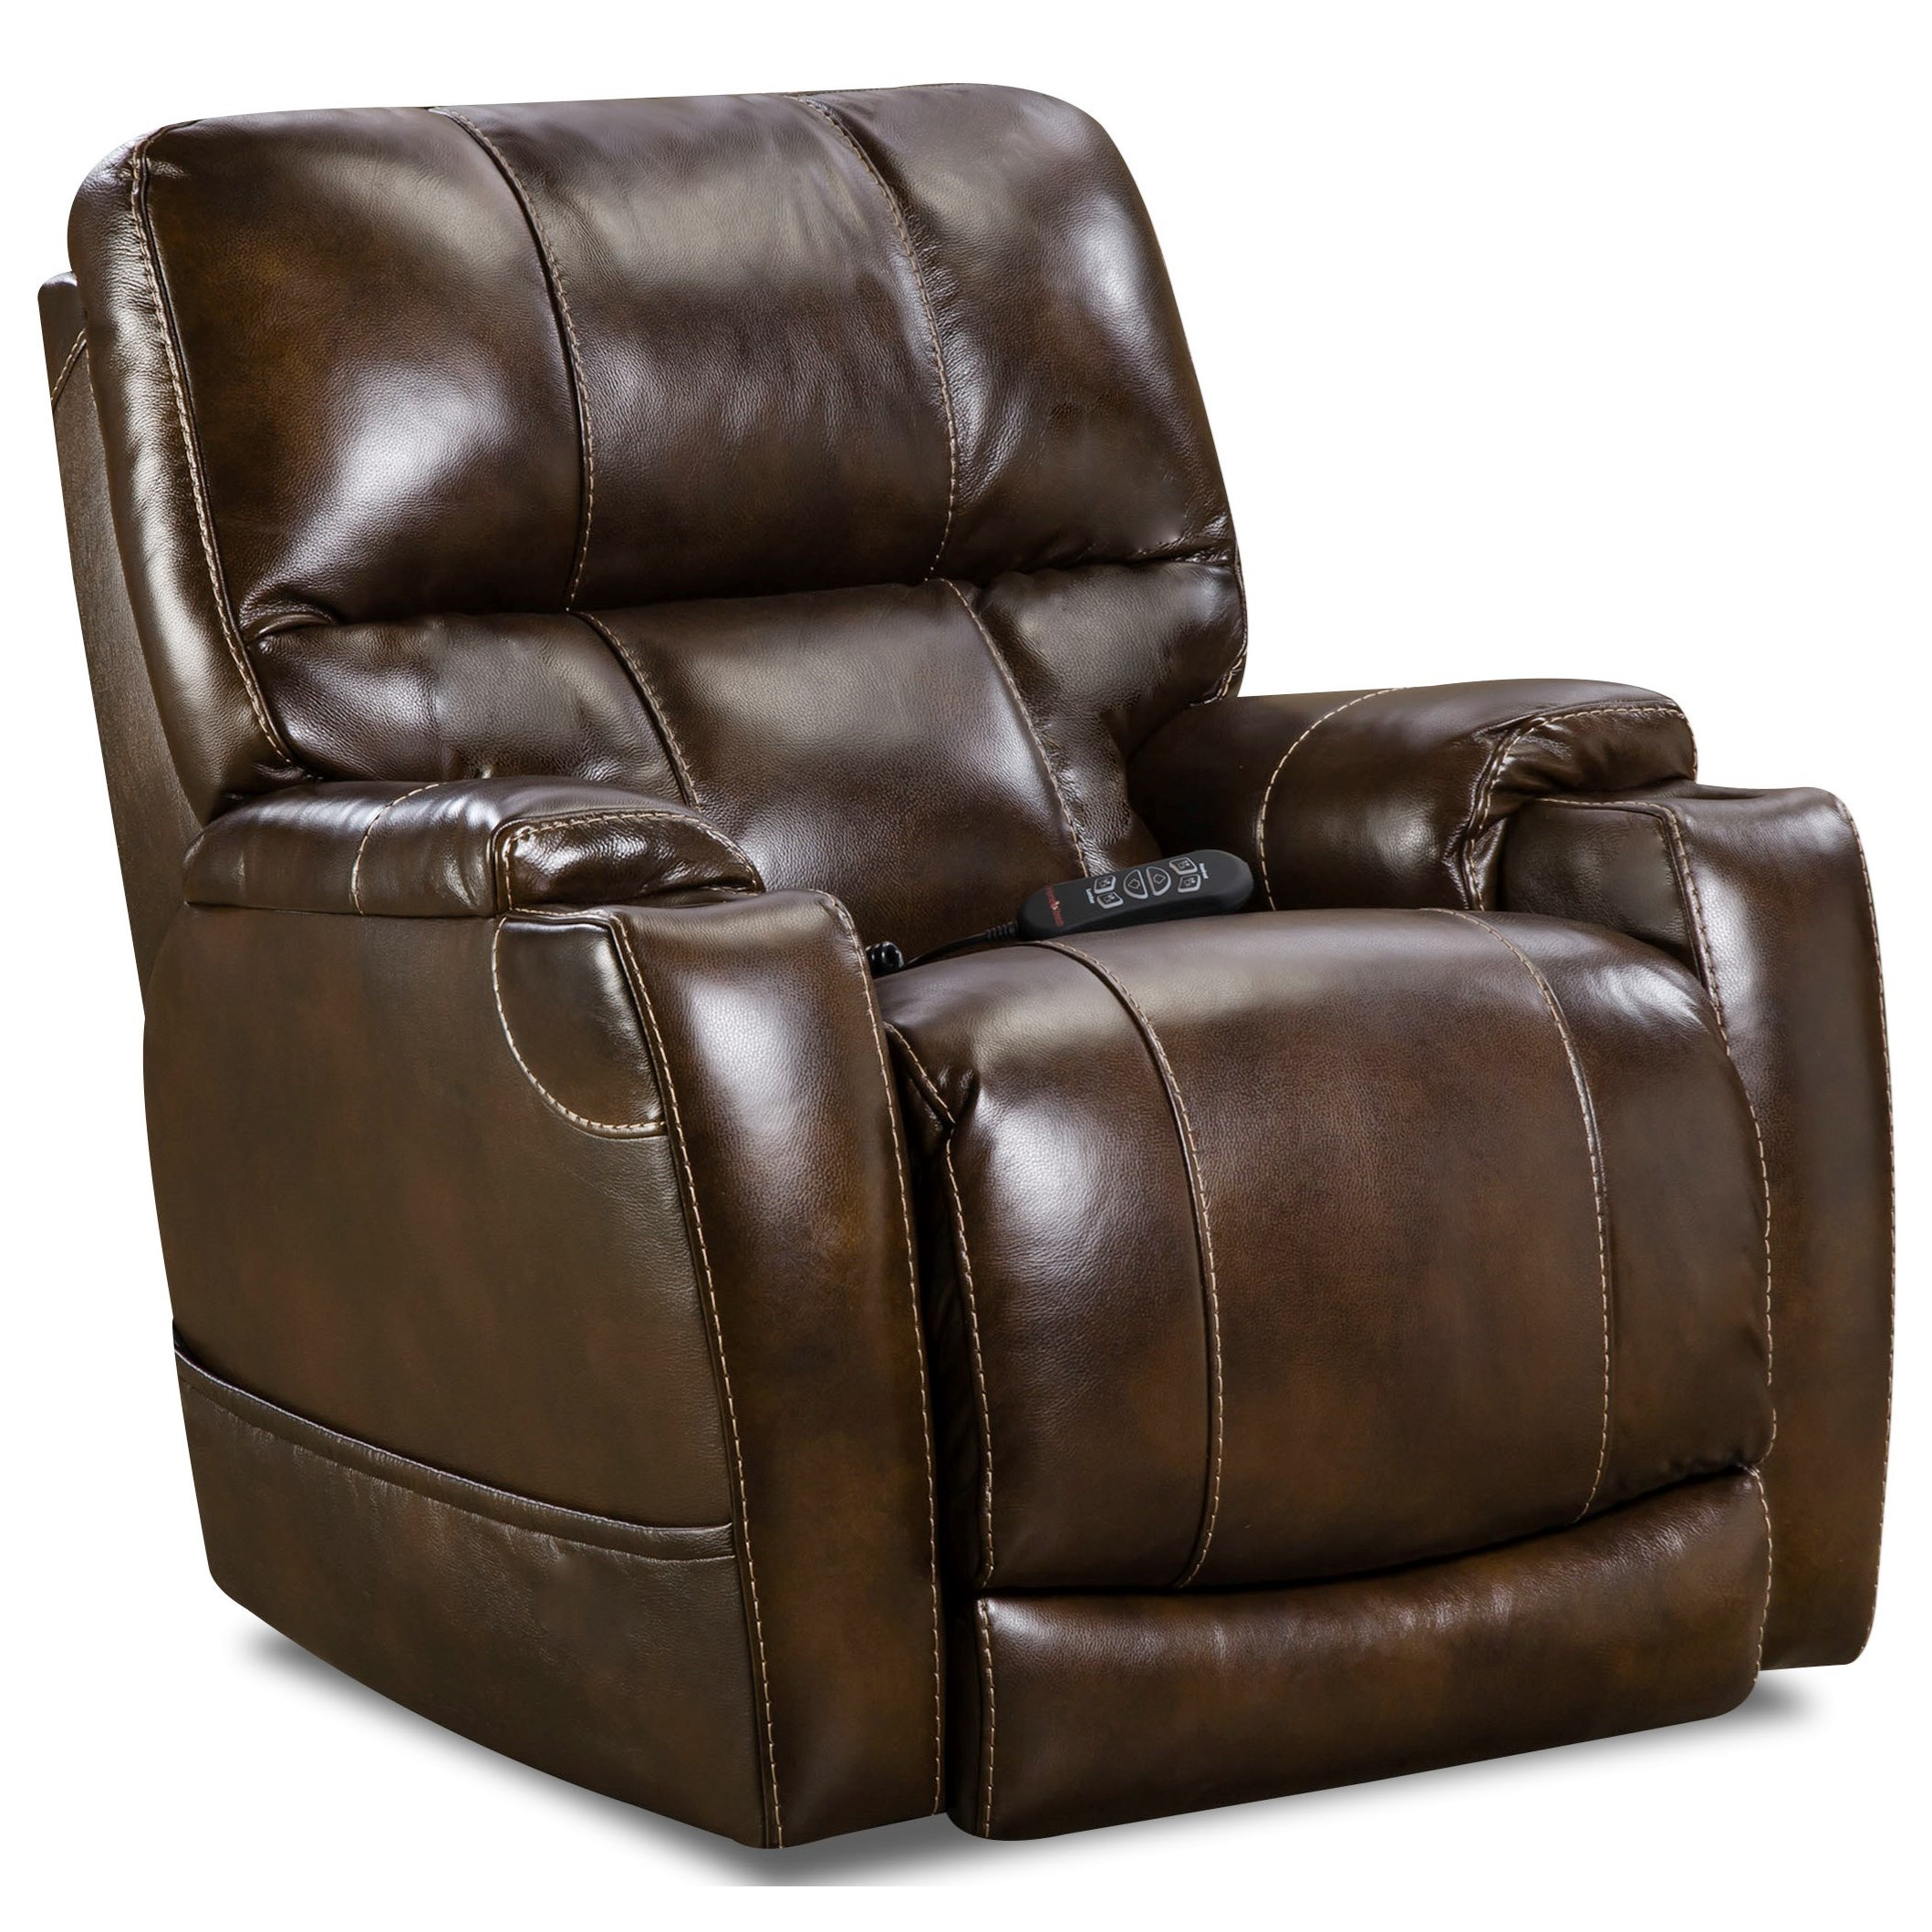 HomeStretch 141 Collection Power Home Theater Recliner - Item Number: 141-97-21